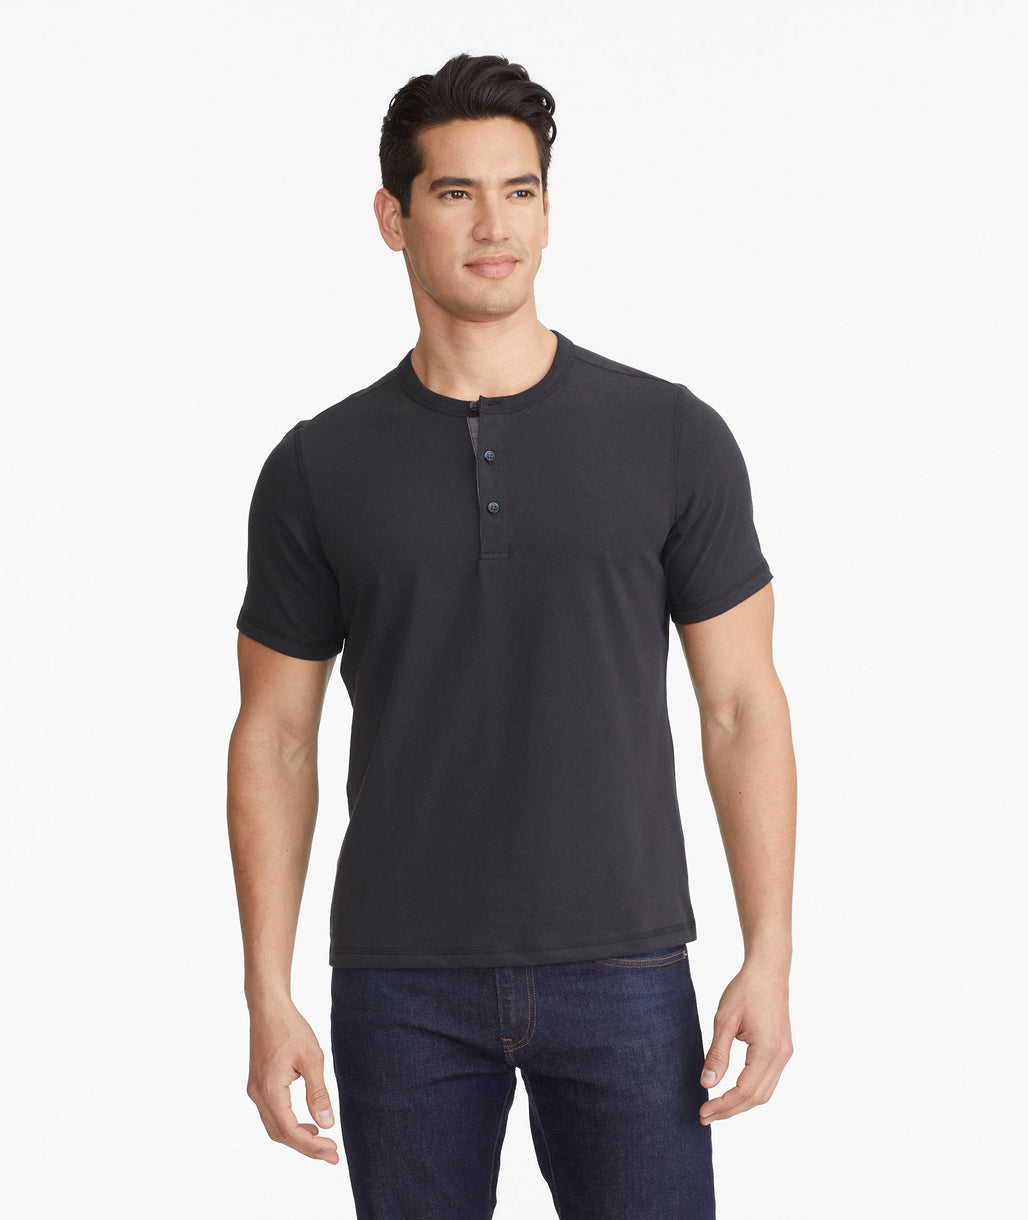 Model wearing a Black Ultrasoft Short-Sleeve Henley